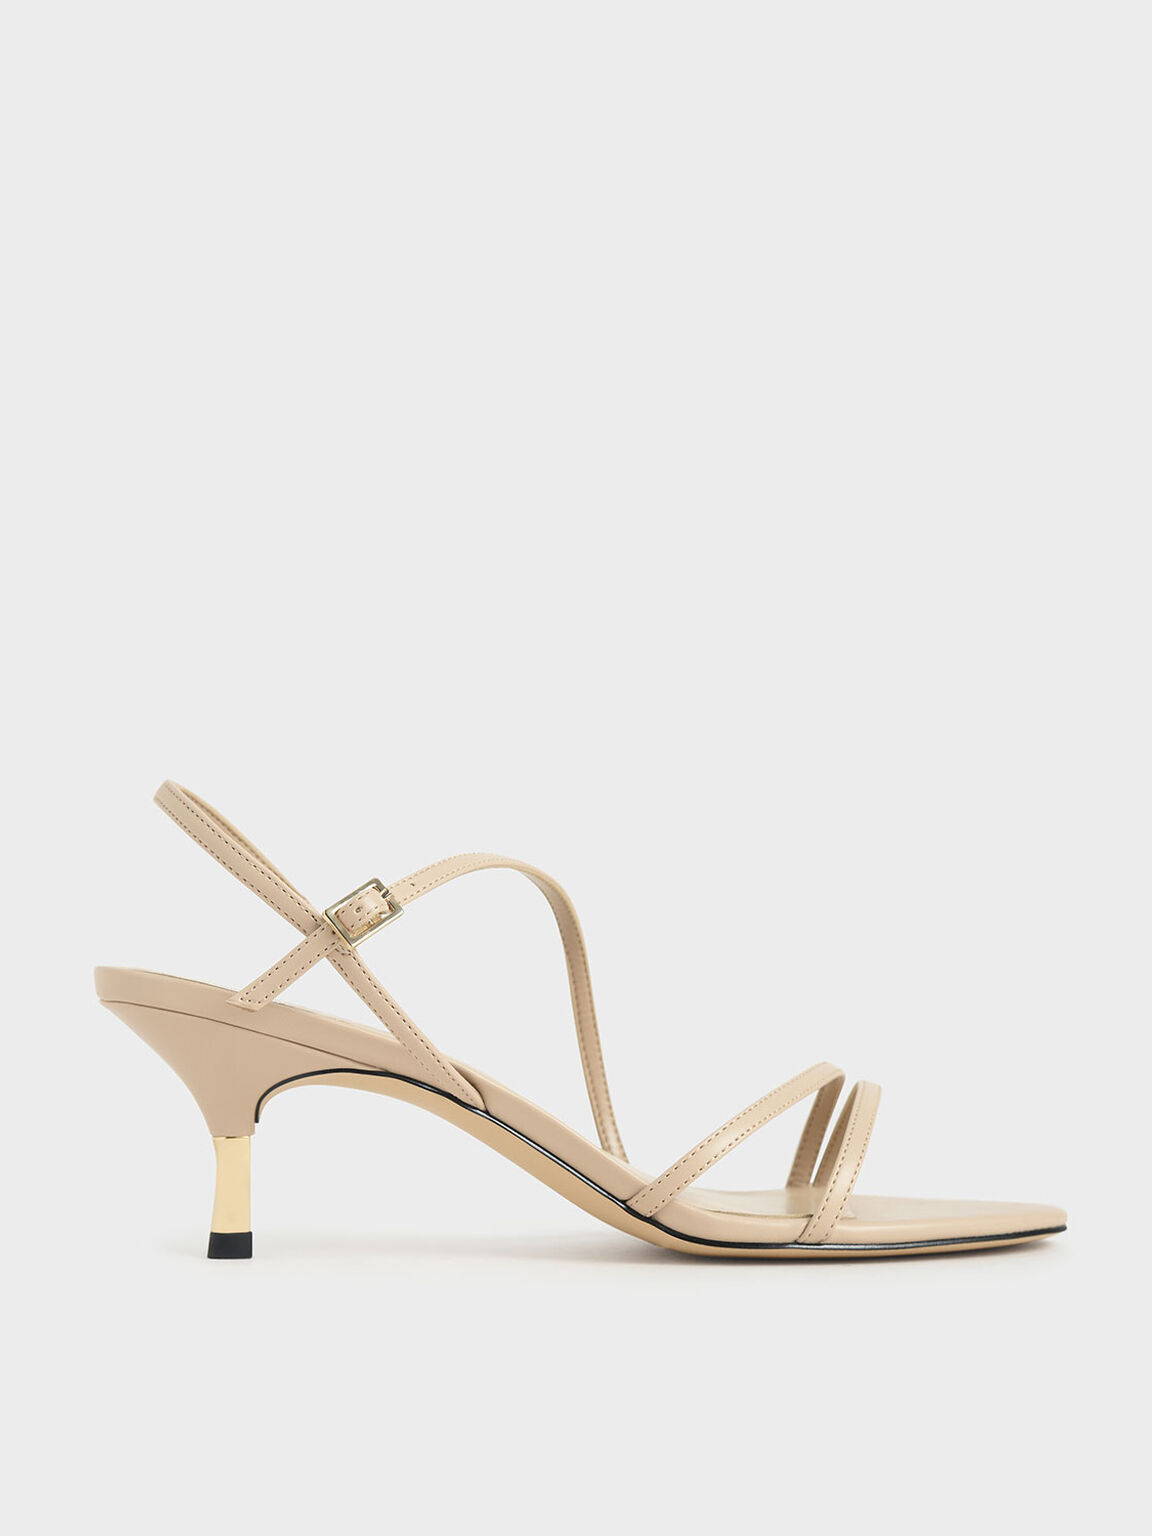 Strappy Metallic Heel Sandals, Nude, hi-res